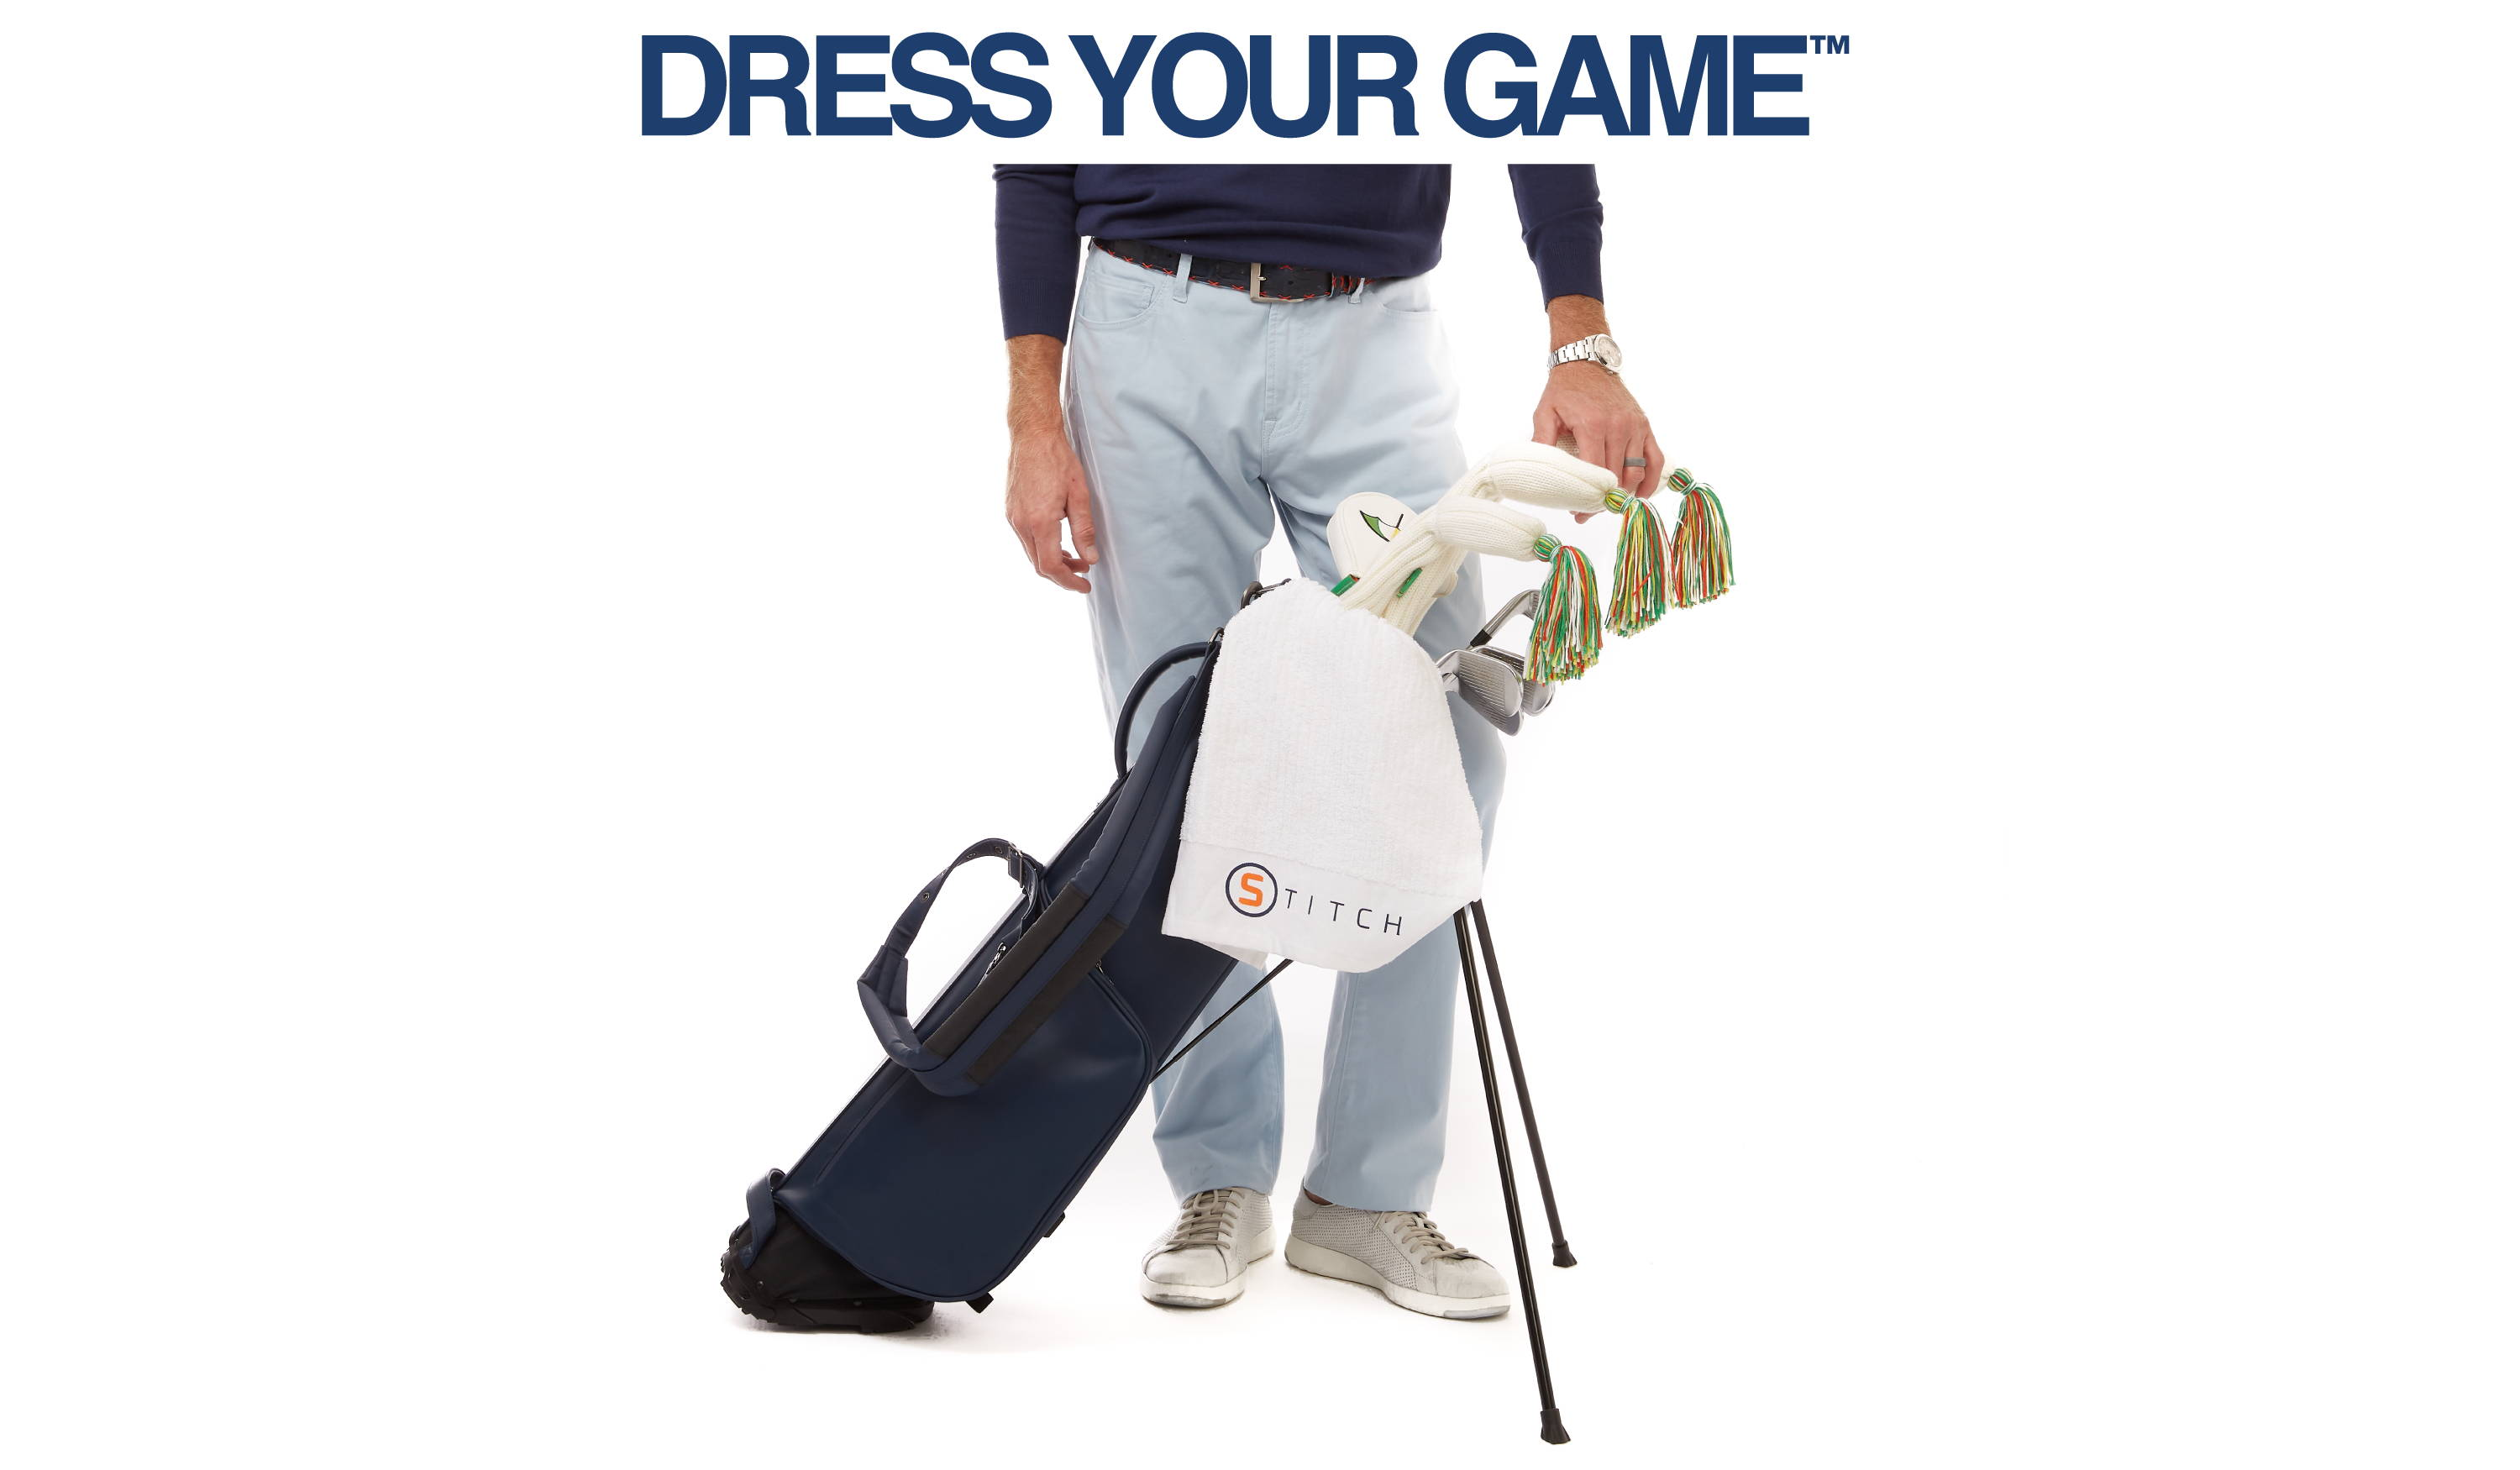 f62cb67655 Dressing your golf game is about more than just your bag and headcovers. It is  about putting together a color-coordinated look to fit the occasion – your  ...